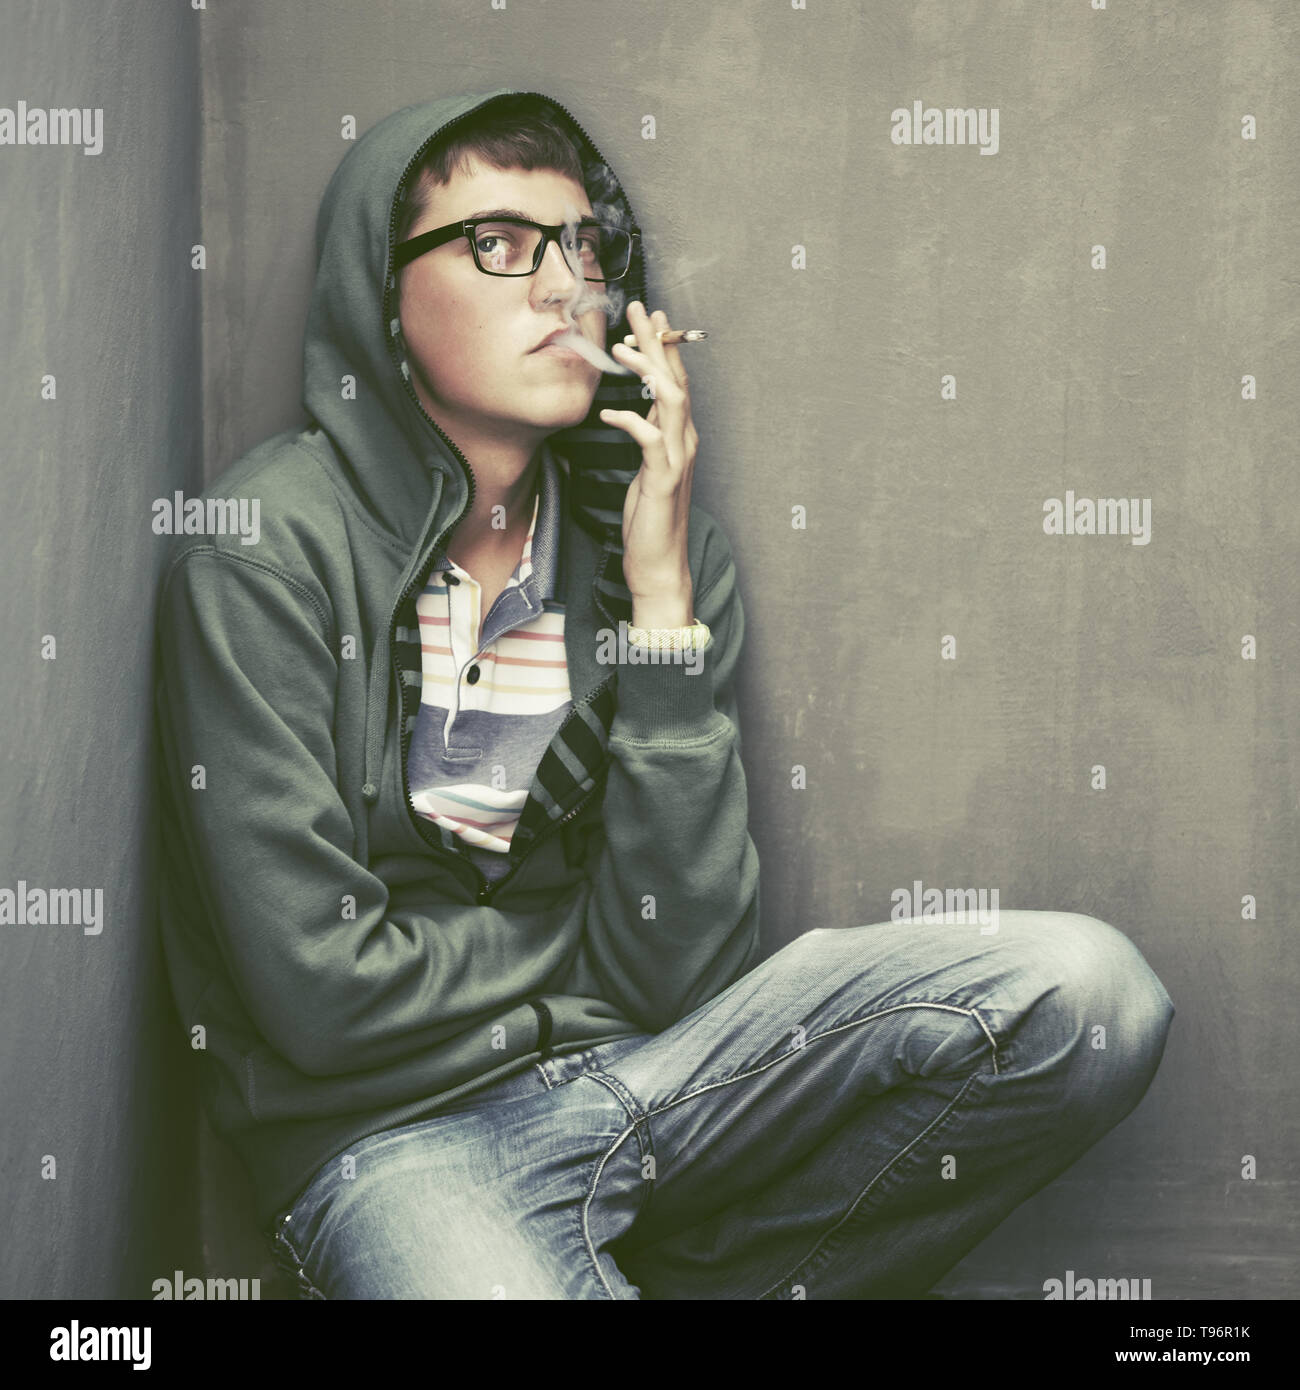 Sad teen boy in a hooded jacket smoking cigarette at the wall